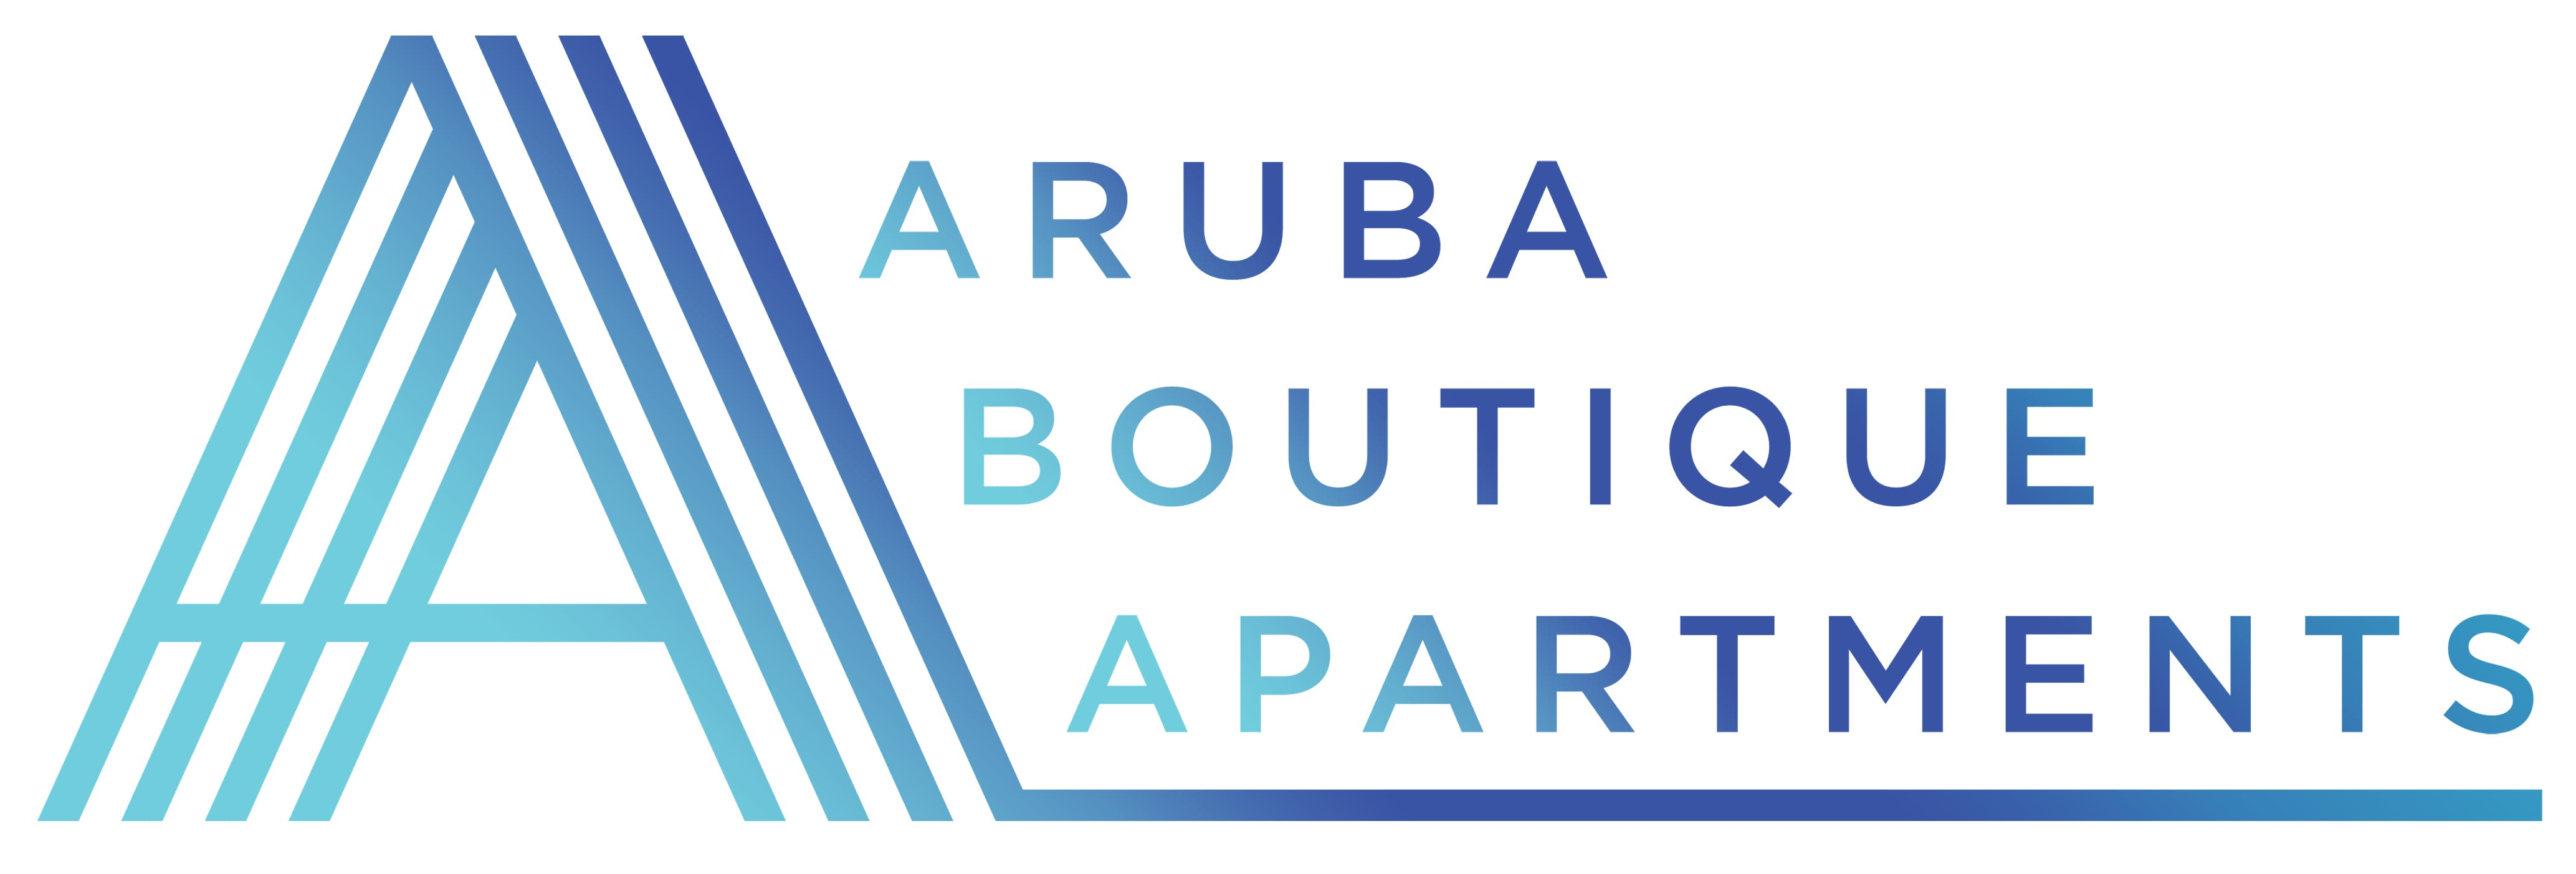 Aruba Boutique Apartments